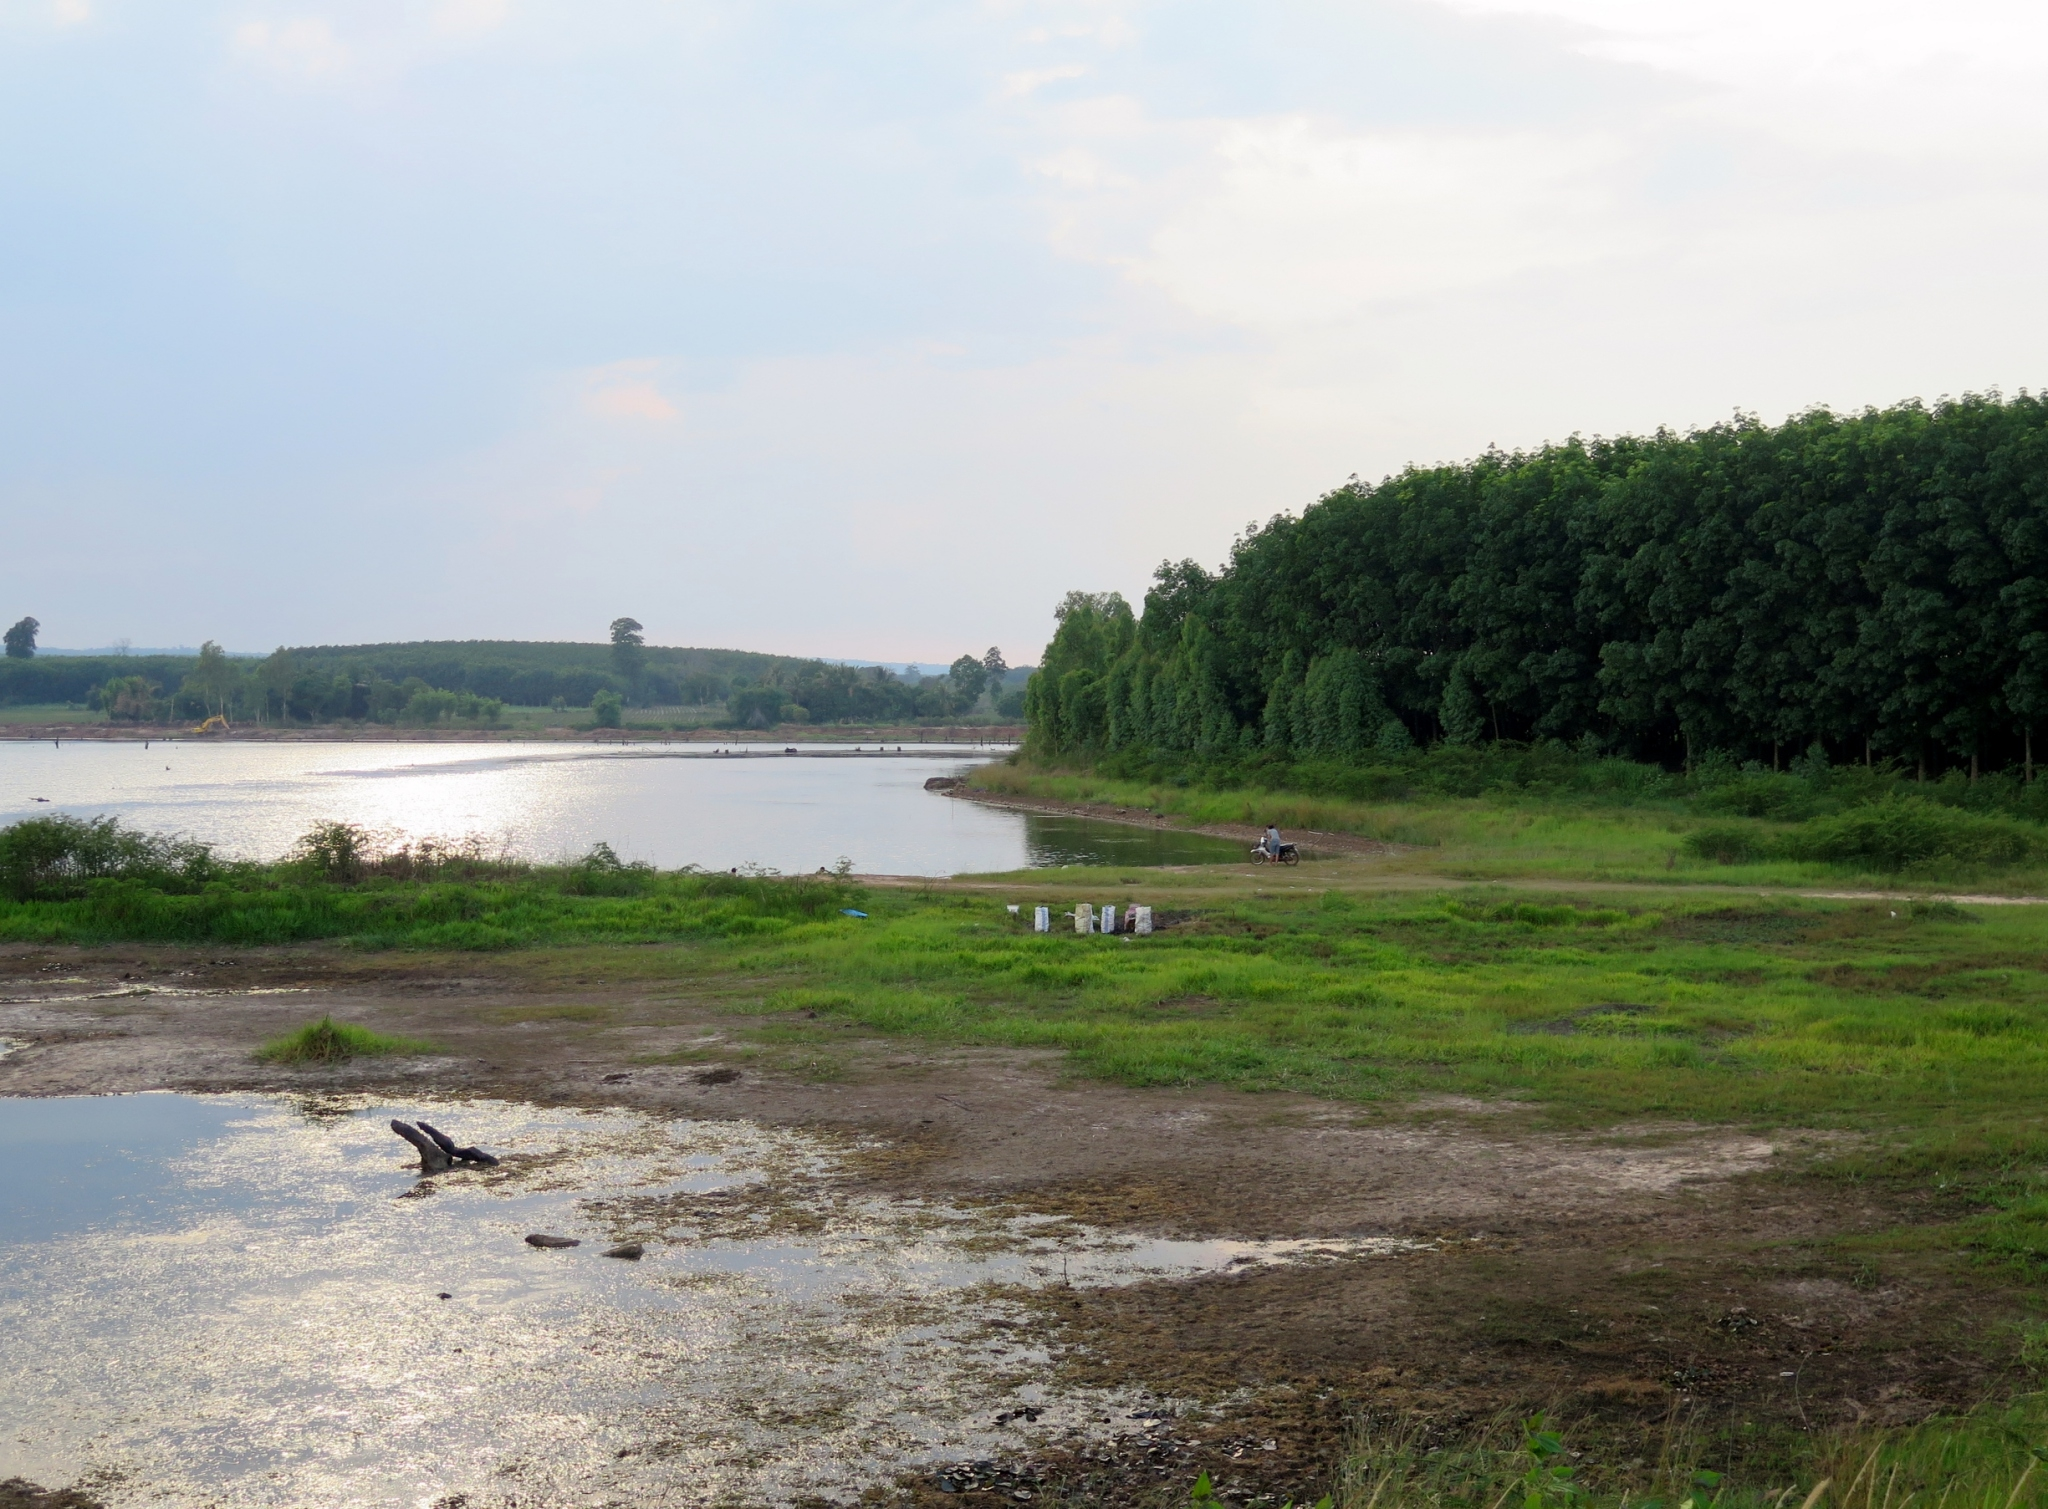 Thai Royal Irrigation Department requests experts to evaluate The Royal Initiative, Huai Ta Poe Reservoir Project in relation to Ecosystem-based Adaptation measure